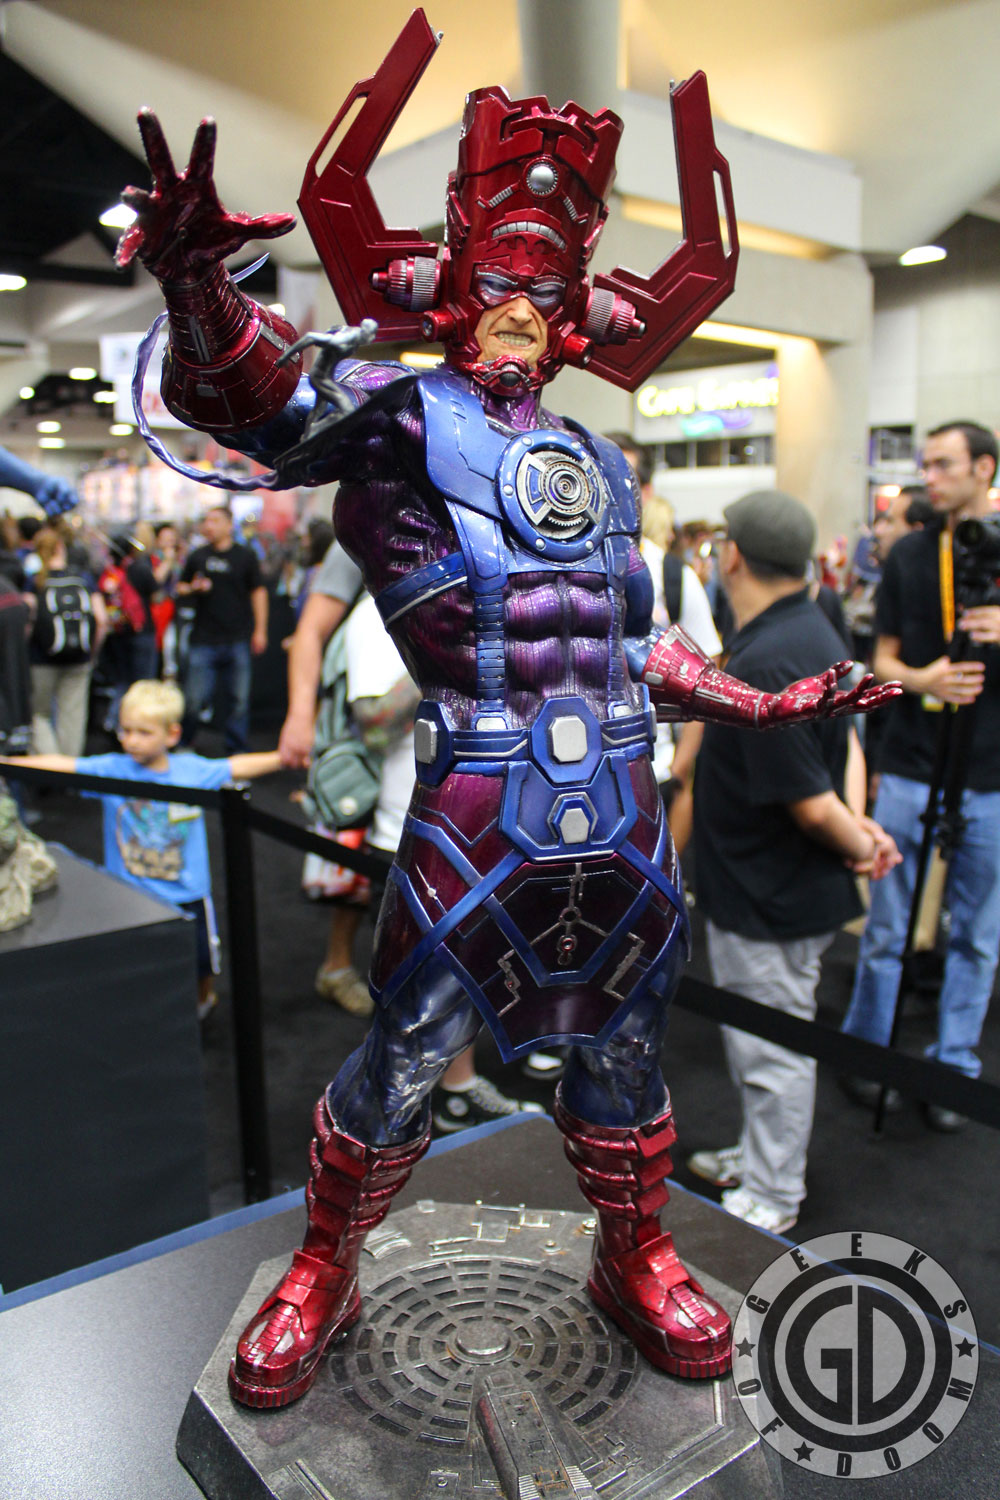 SDCC 2012 Sideshow Collectibles Galactus Statue